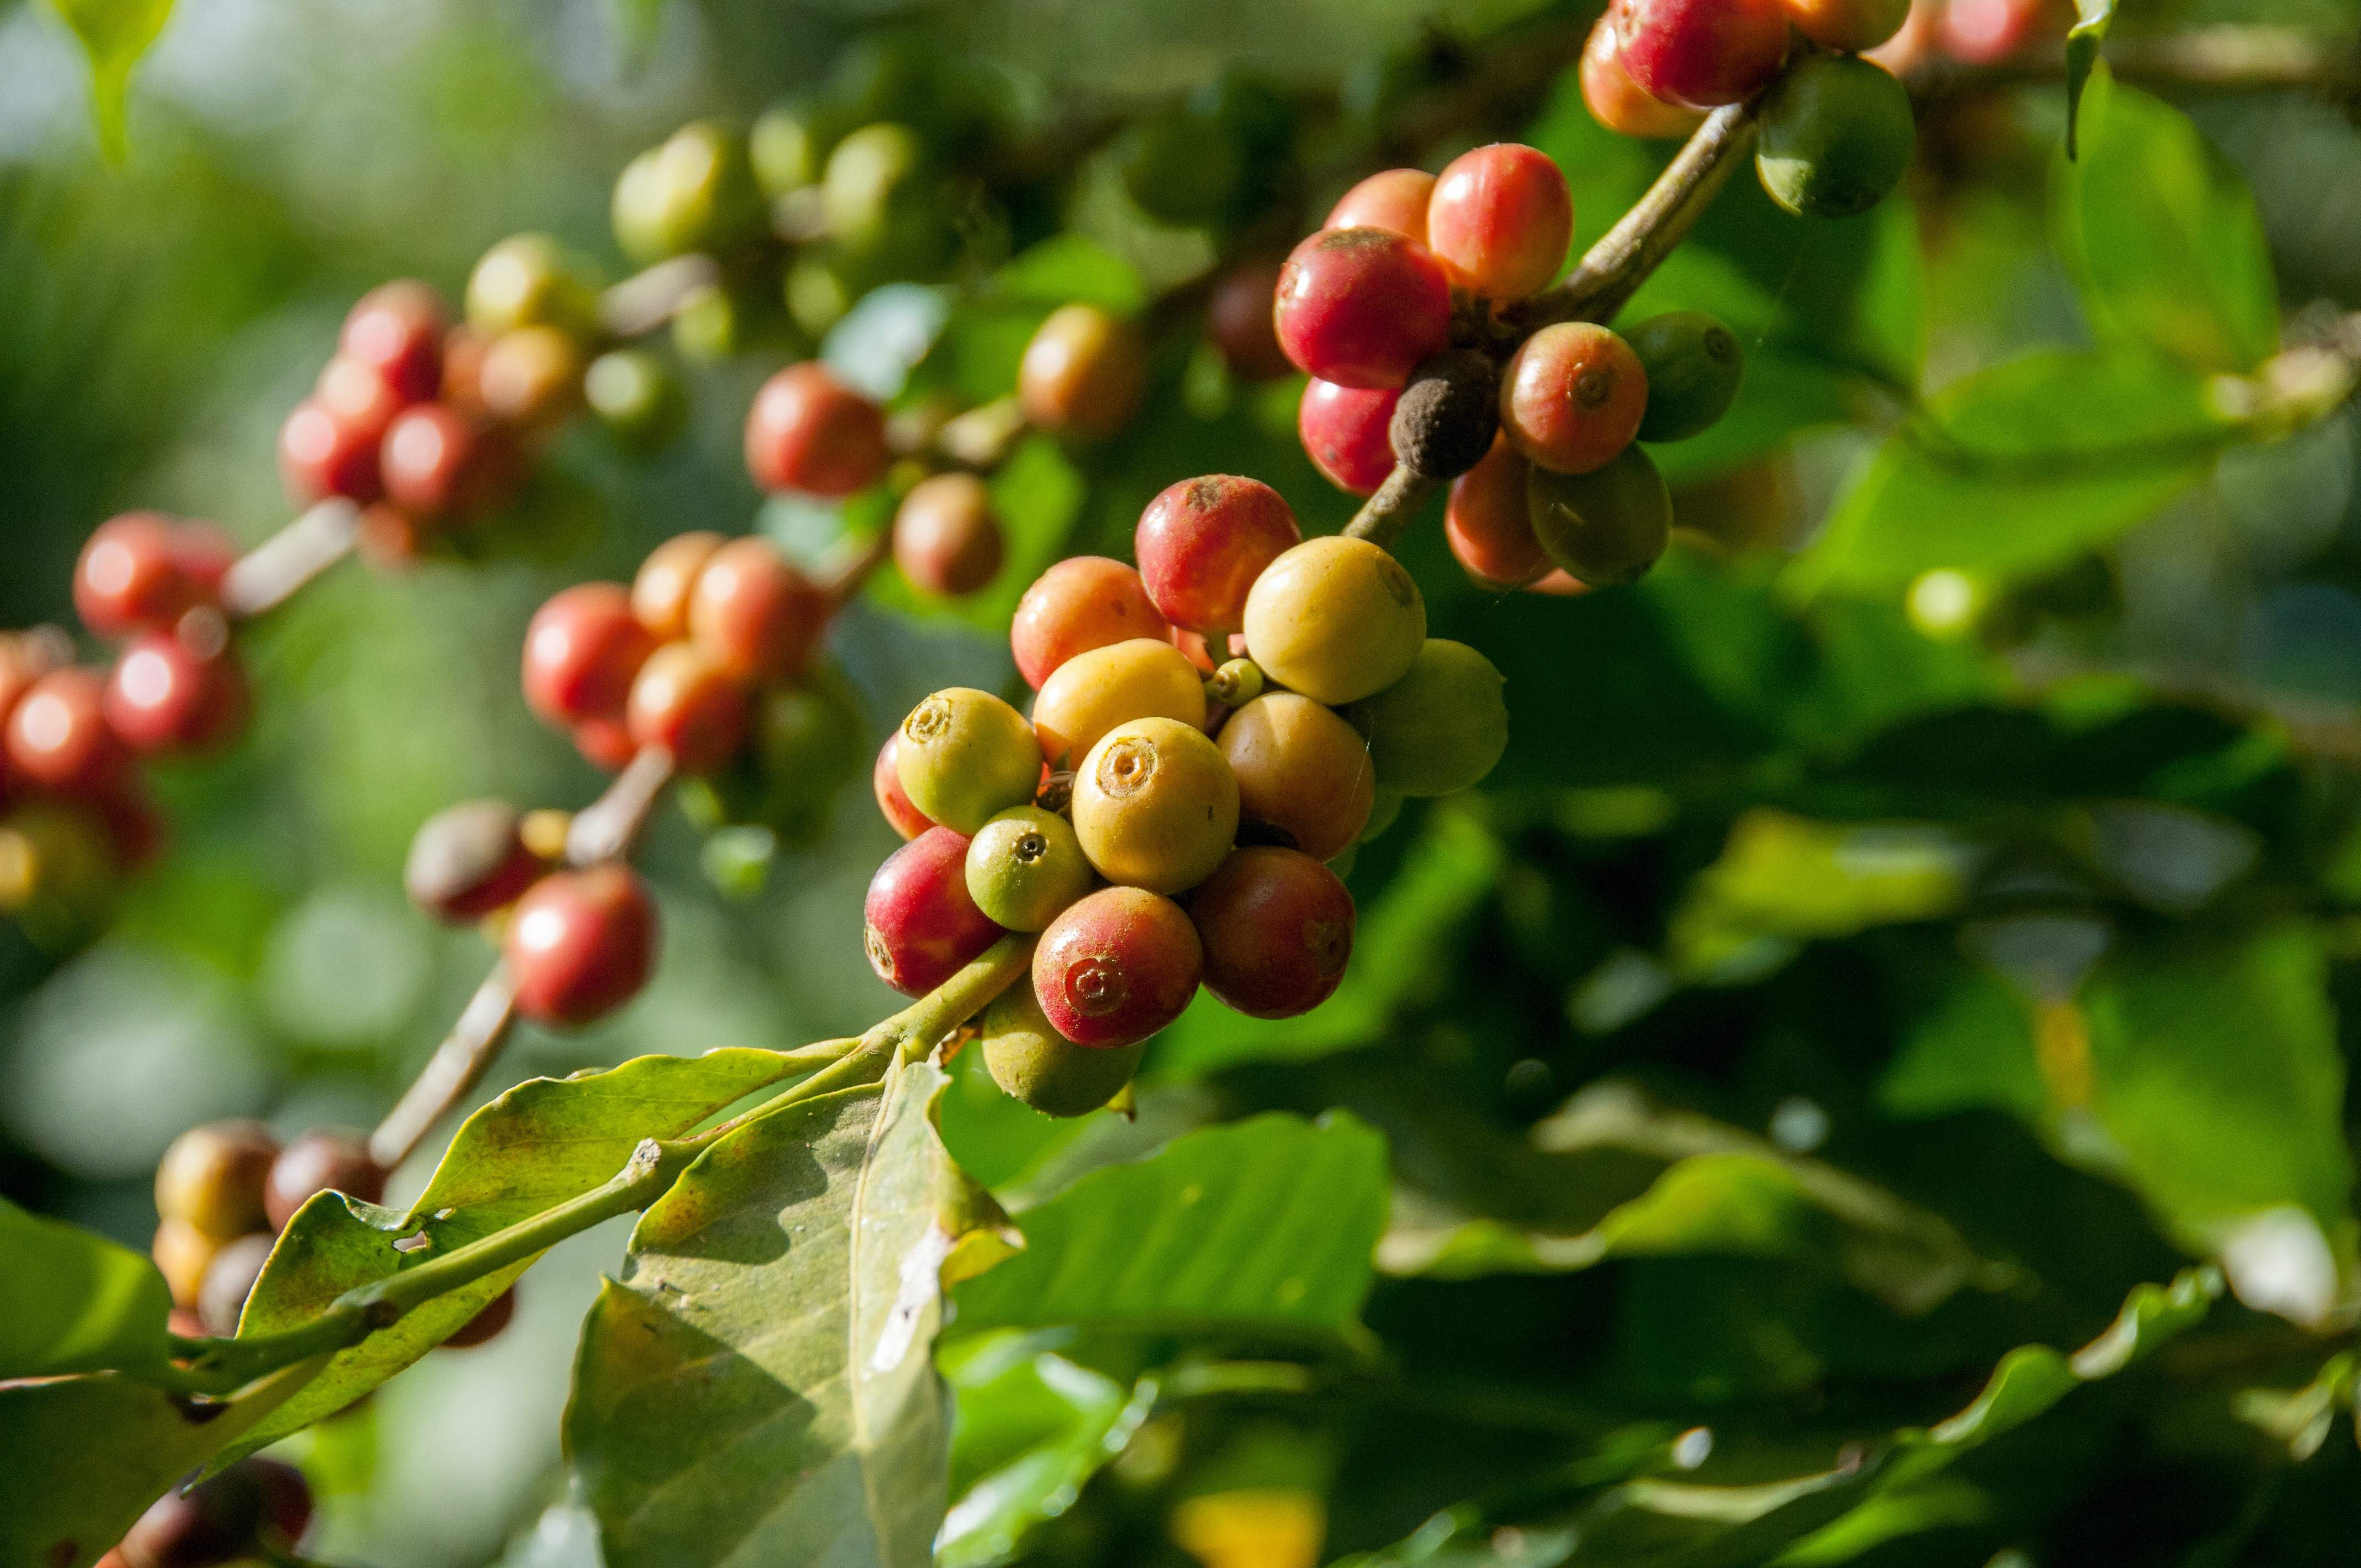 Rombo coffee farmers for processing plant